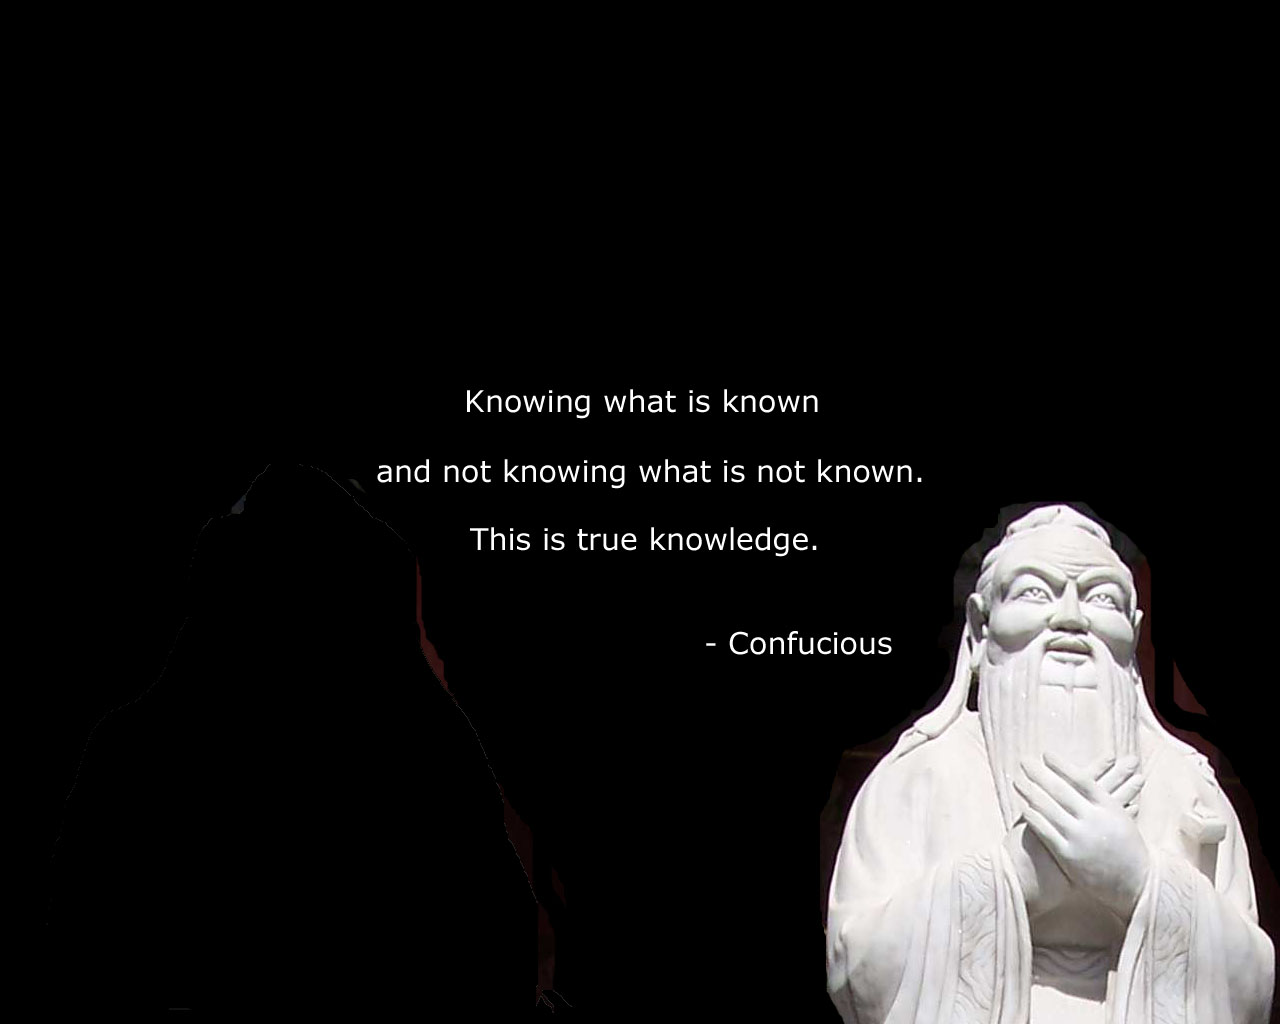 knowledge confucius quote